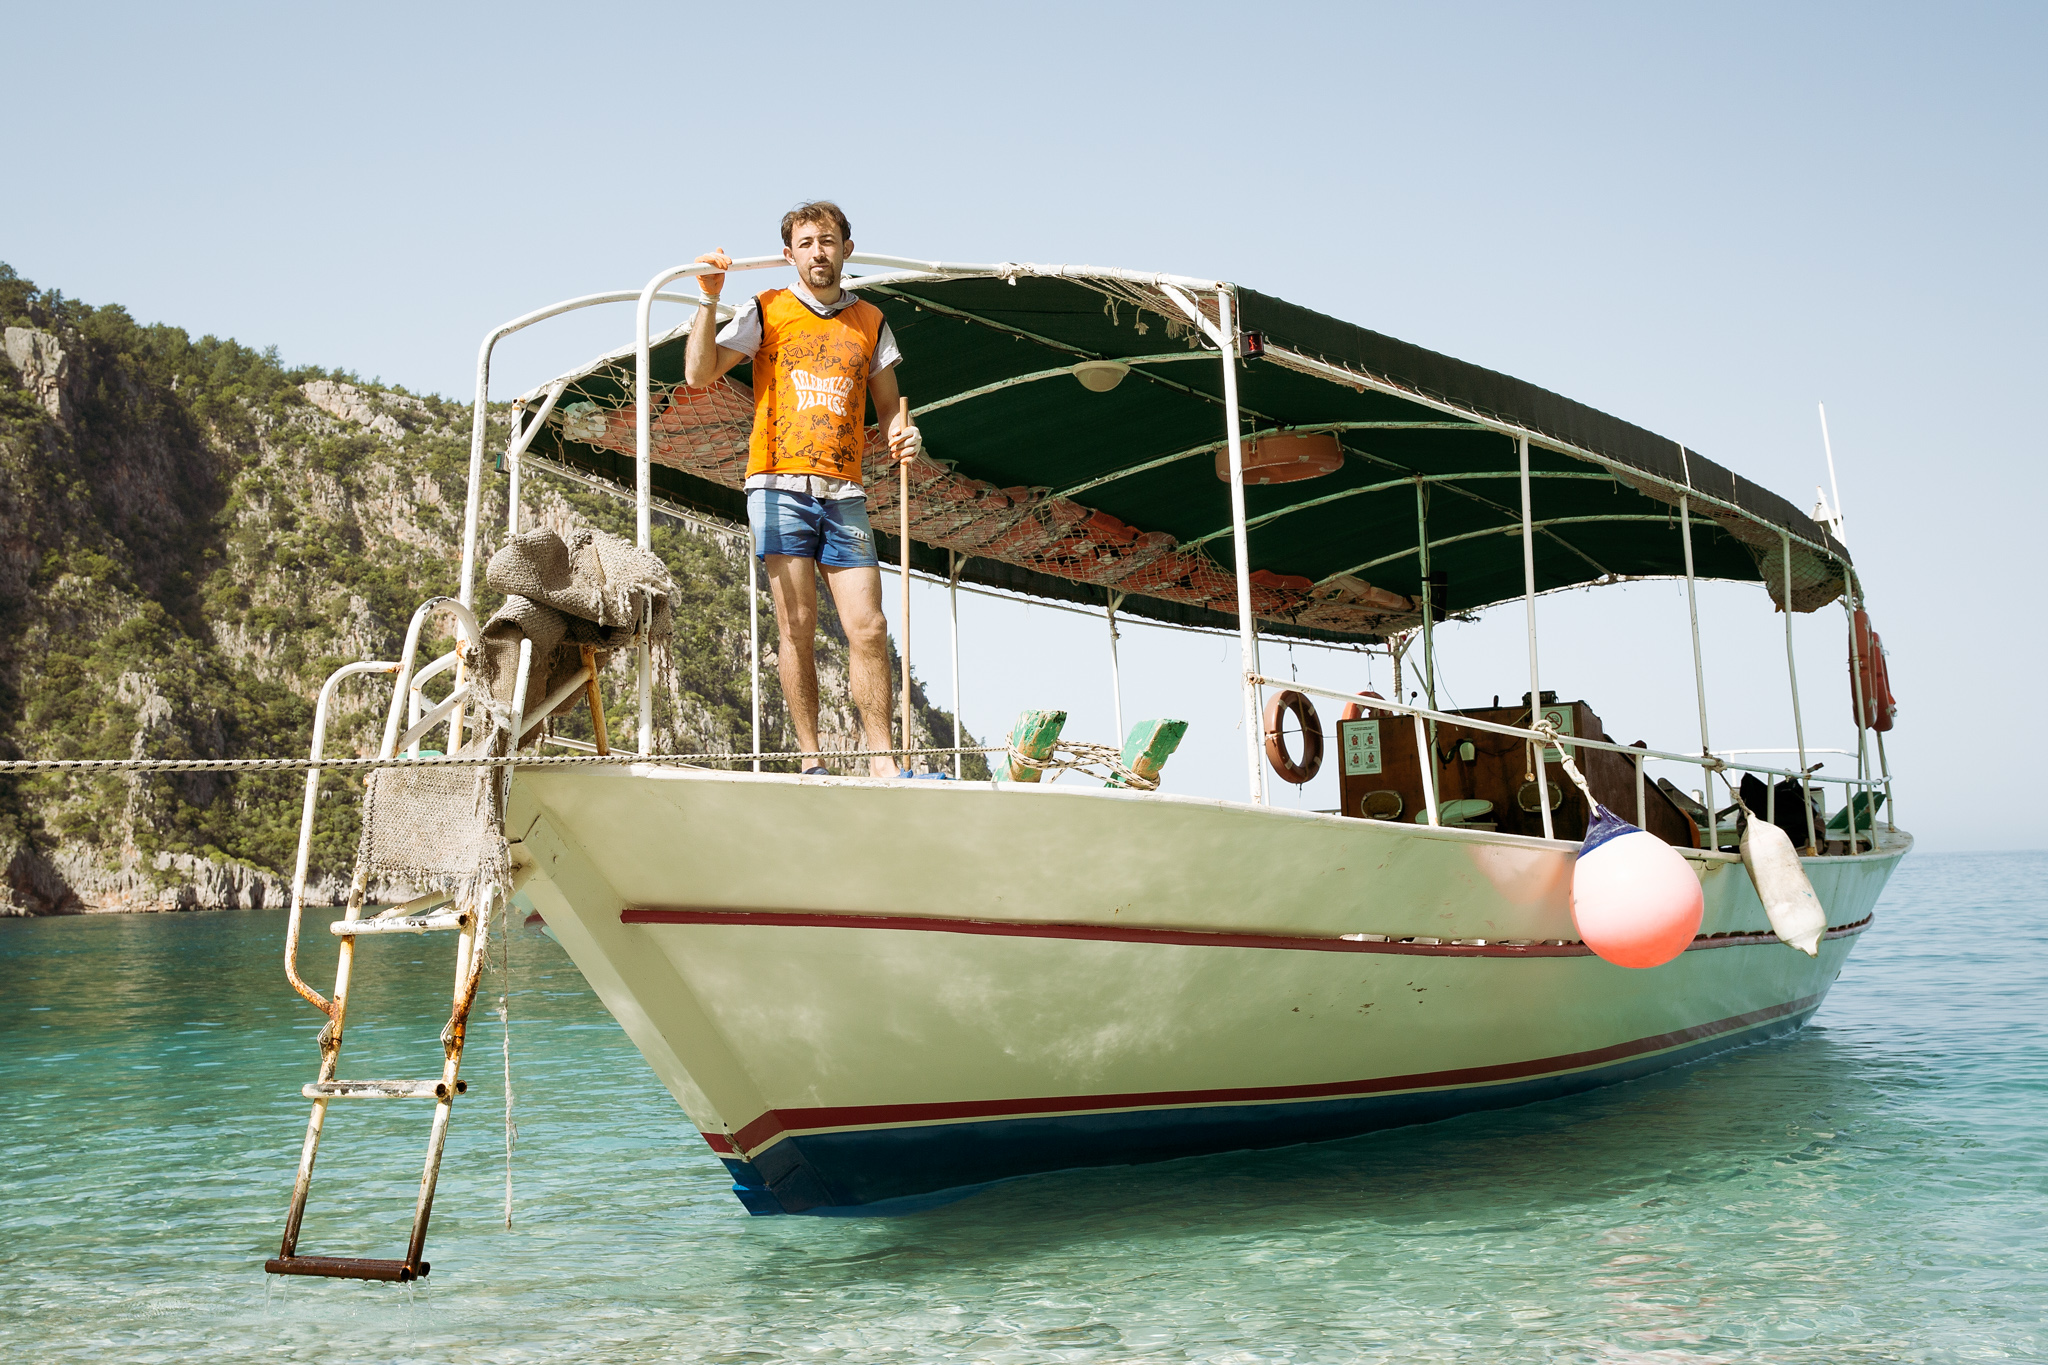 lycian-way_butterfly-valley_decent_beach-3076-boat-cleaner-on-boat.jpg